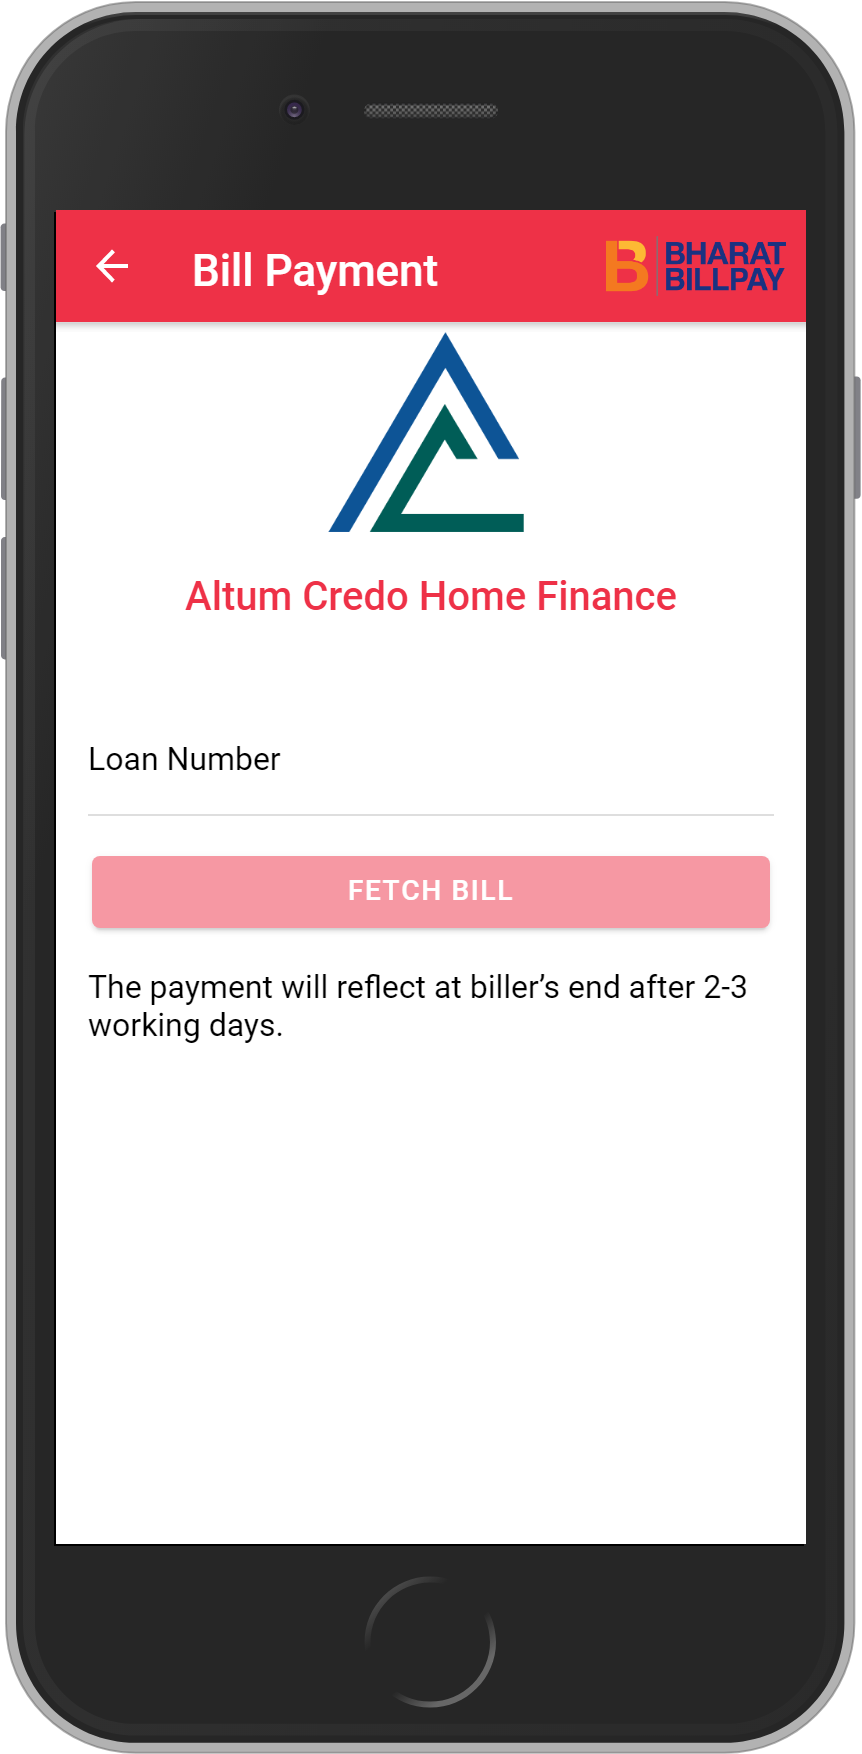 Get UNLIMITED <b>0.1%</b> CASHBACK on Altum Credo Home Finance Loan Payment.